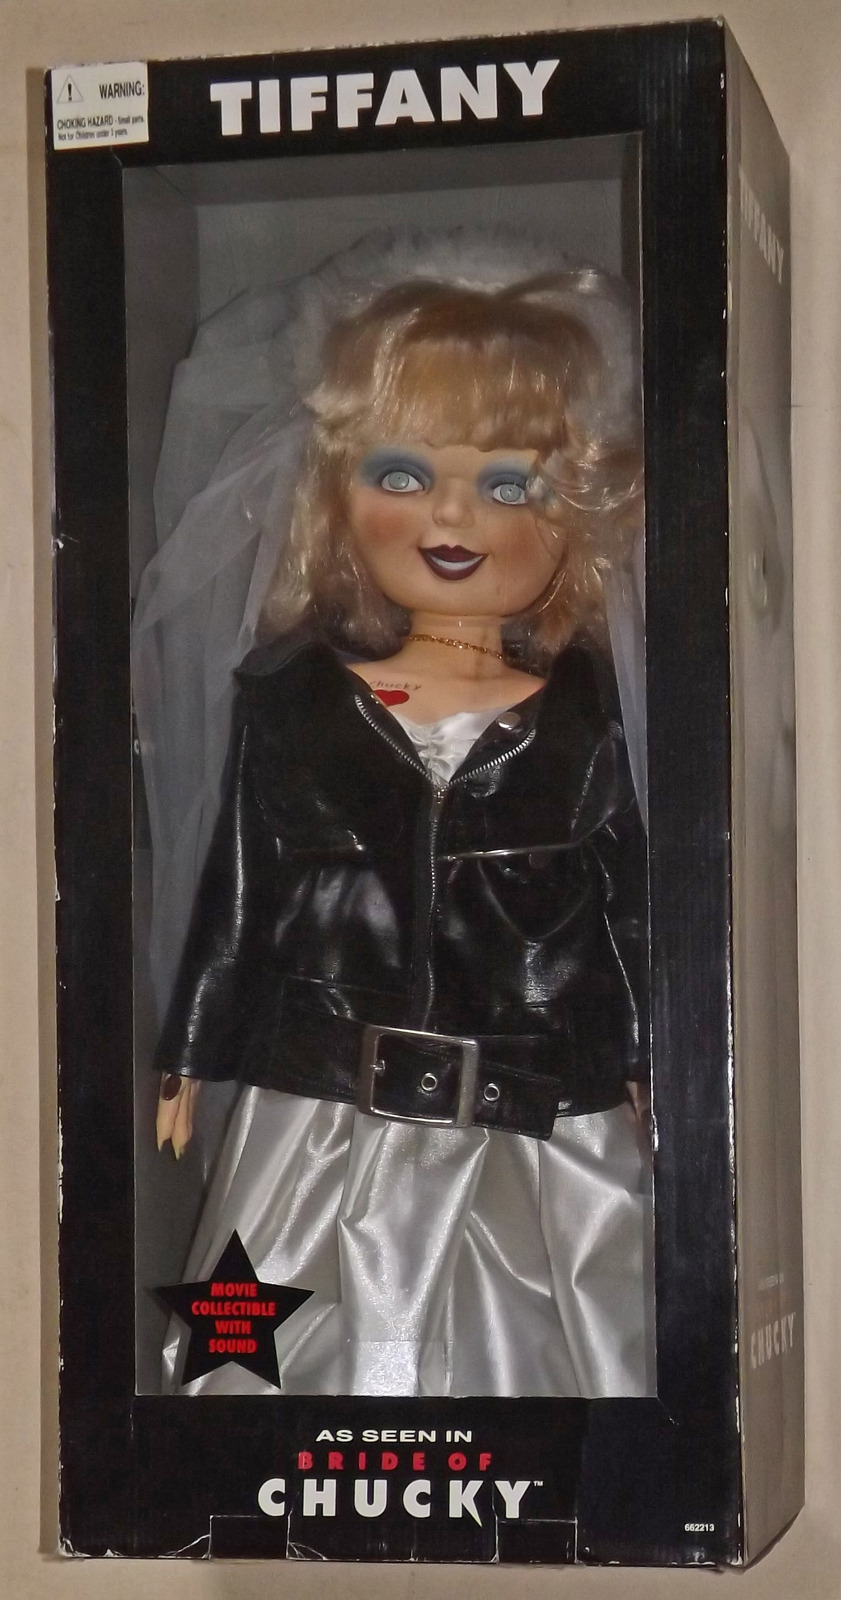 2006 First Edition, Life Size Tiffany Doll, as Seen in Bride of Chucky (with tal